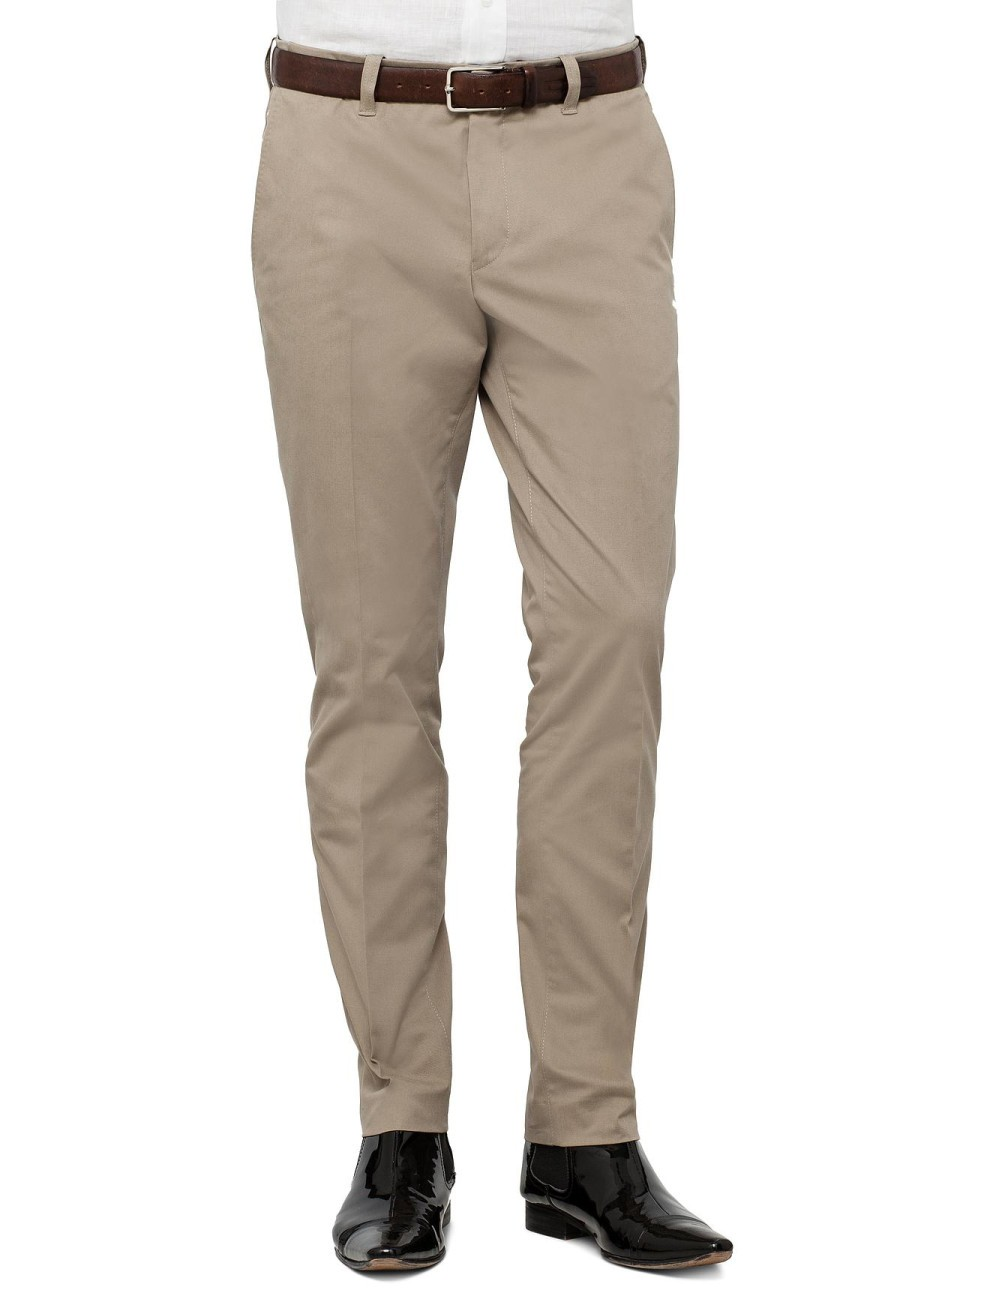 Camel Colored Stretch Cotton Formal Trouser